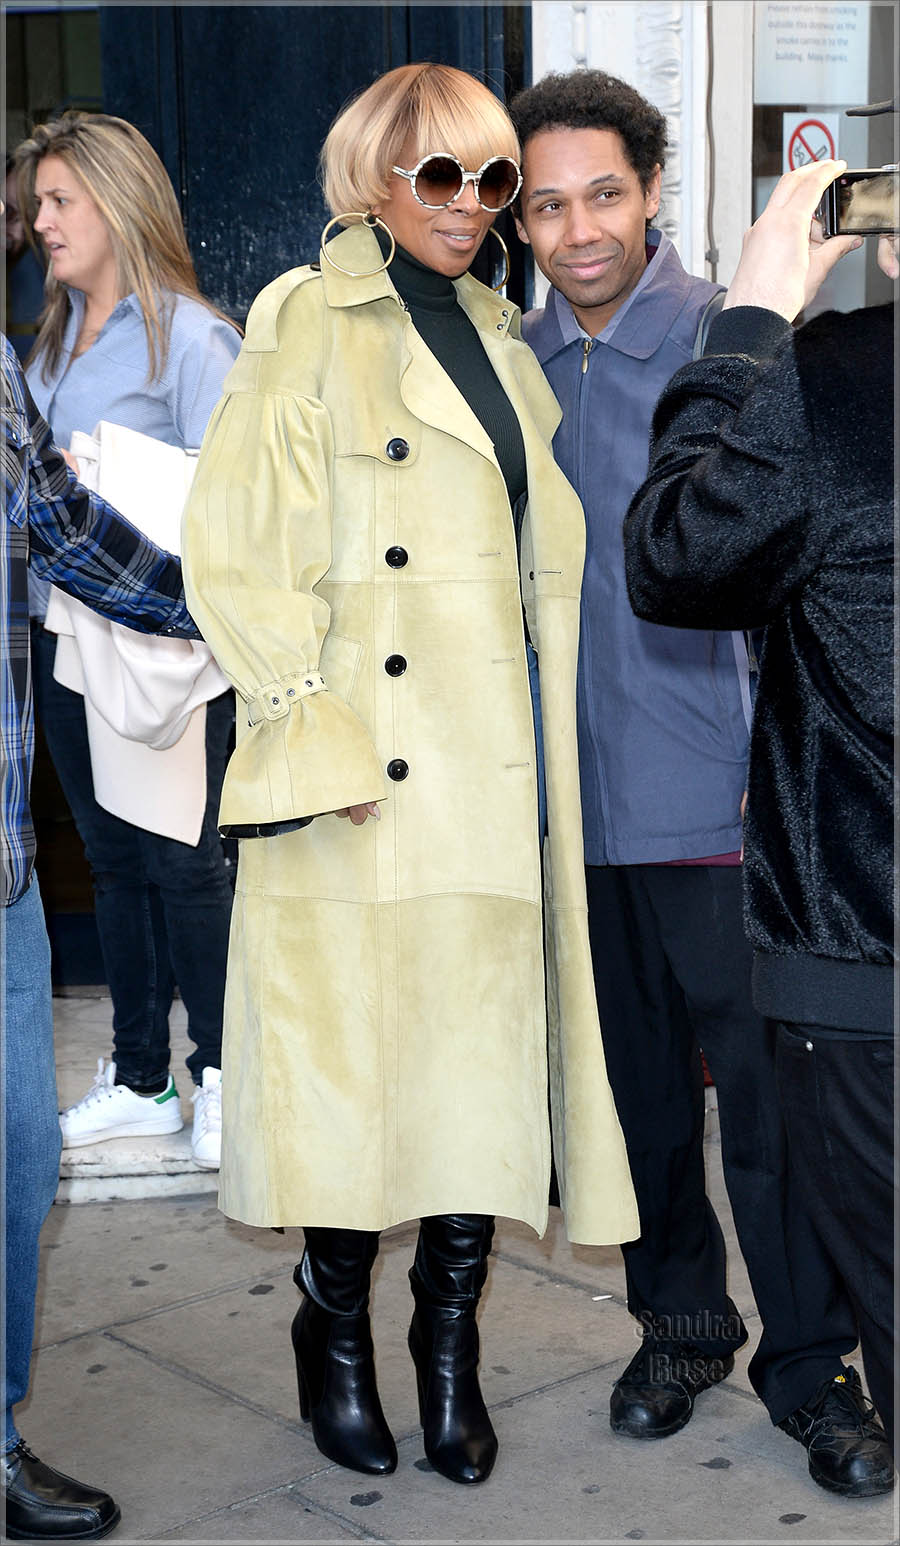 Mary J Blige in London